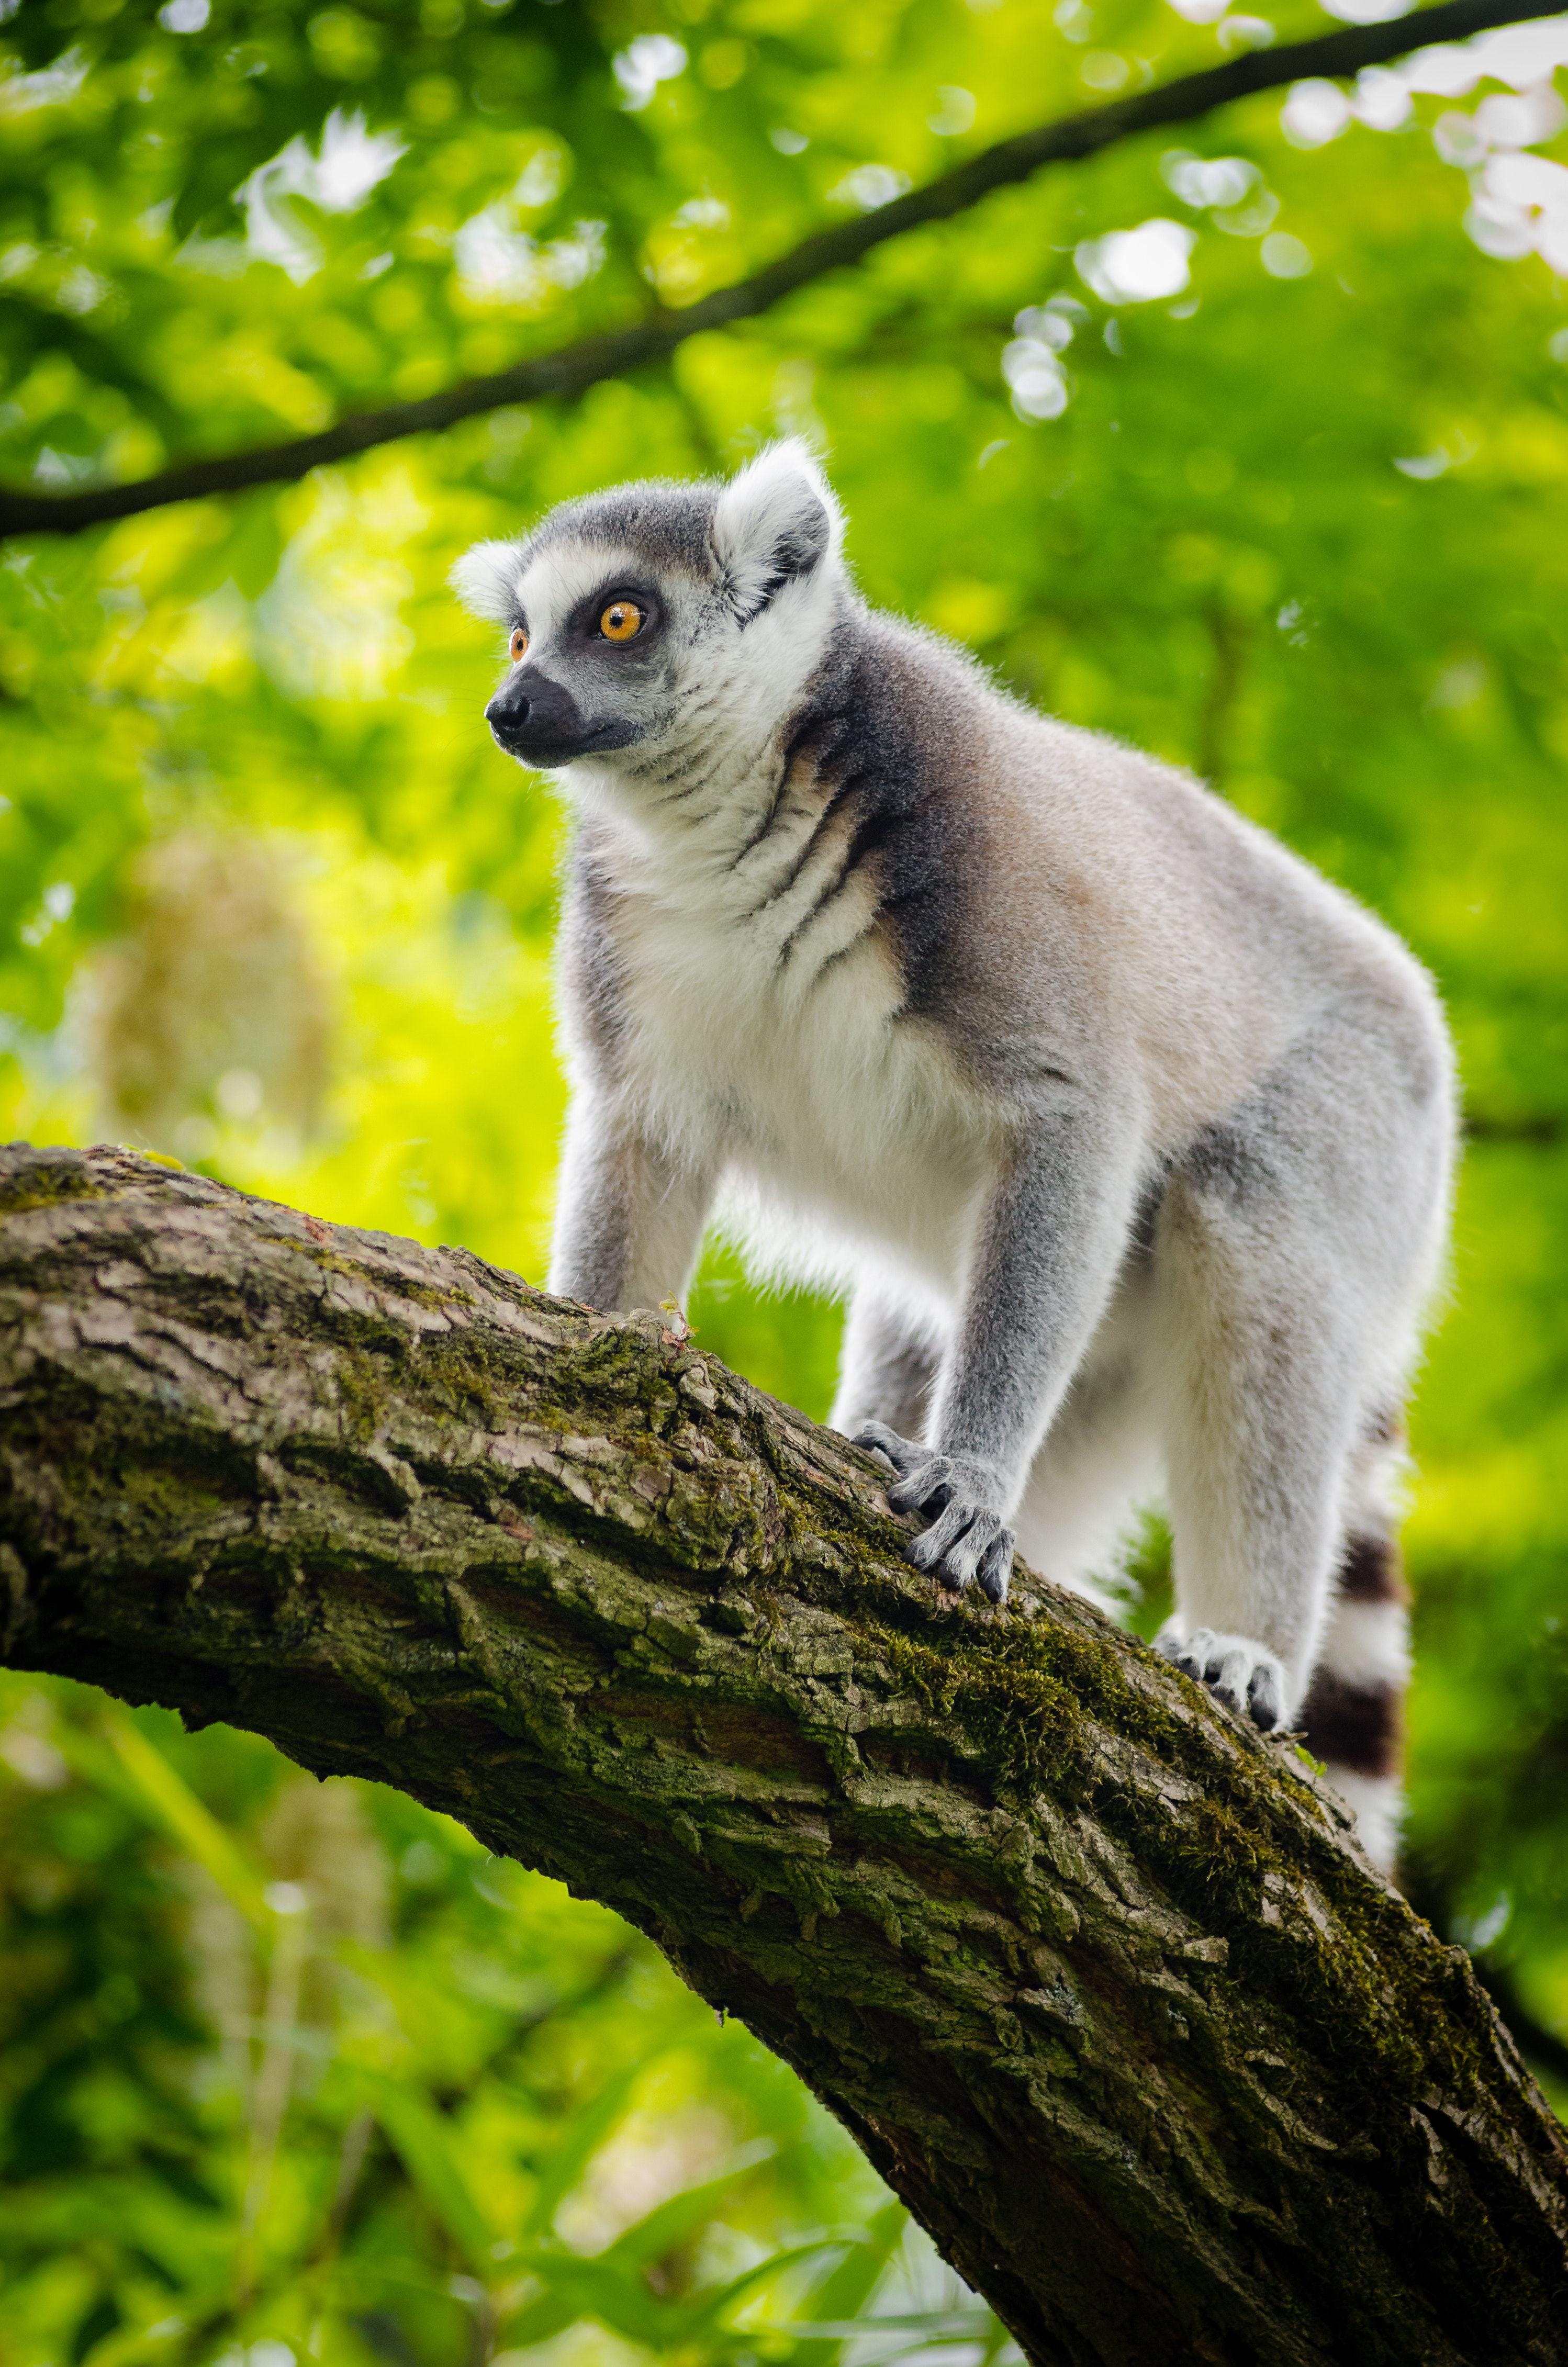 White and Gray Lemur on Tree Trunk, Animal, Animal photography, Blur, Close-up, HQ Photo